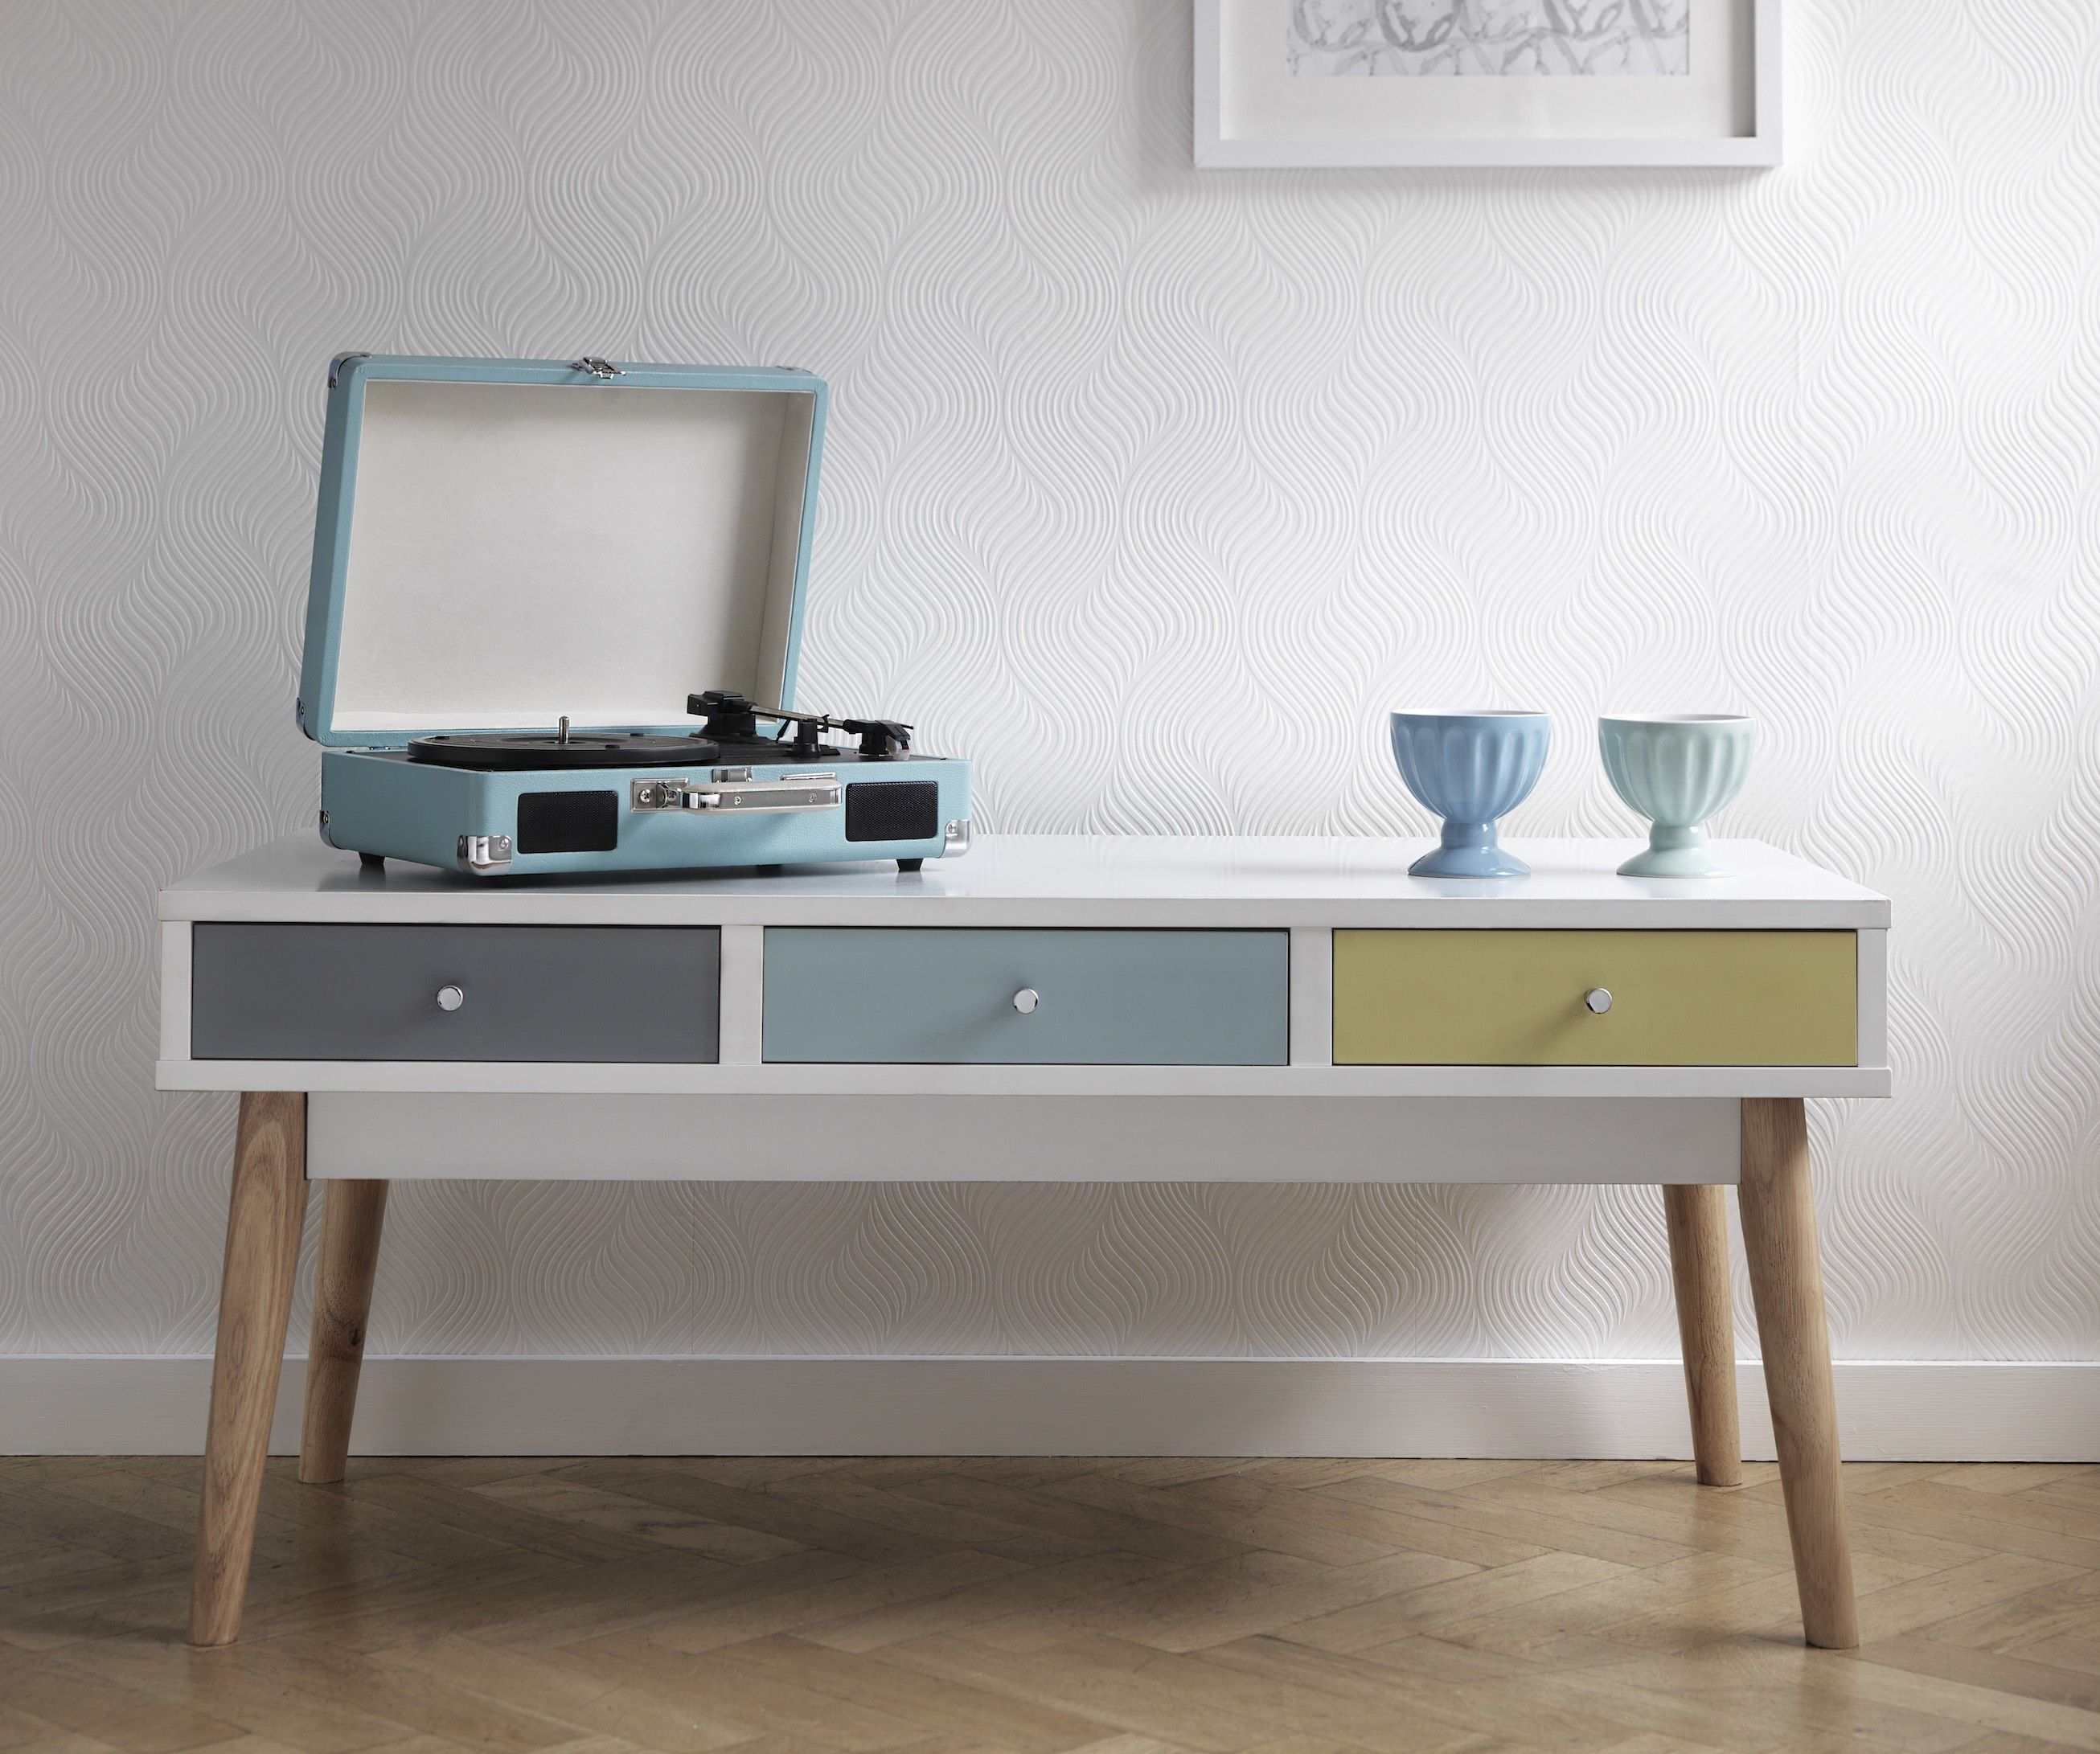 add some retro style to your home with the hygena lumina drawer